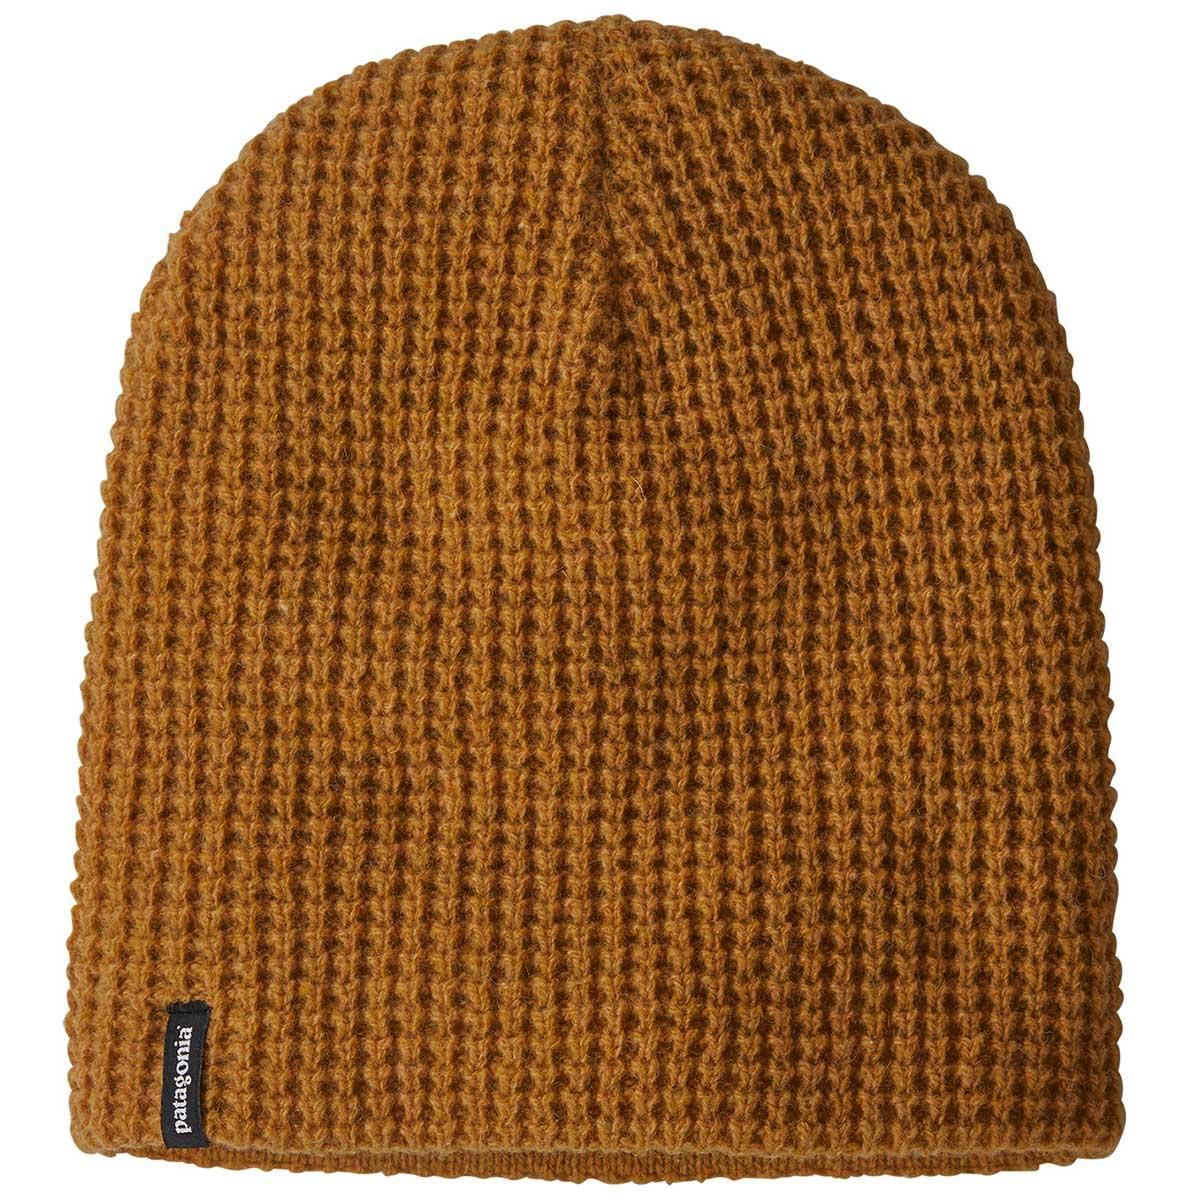 Patagonia Desert Sky Beanie in Hammonds Gold front view